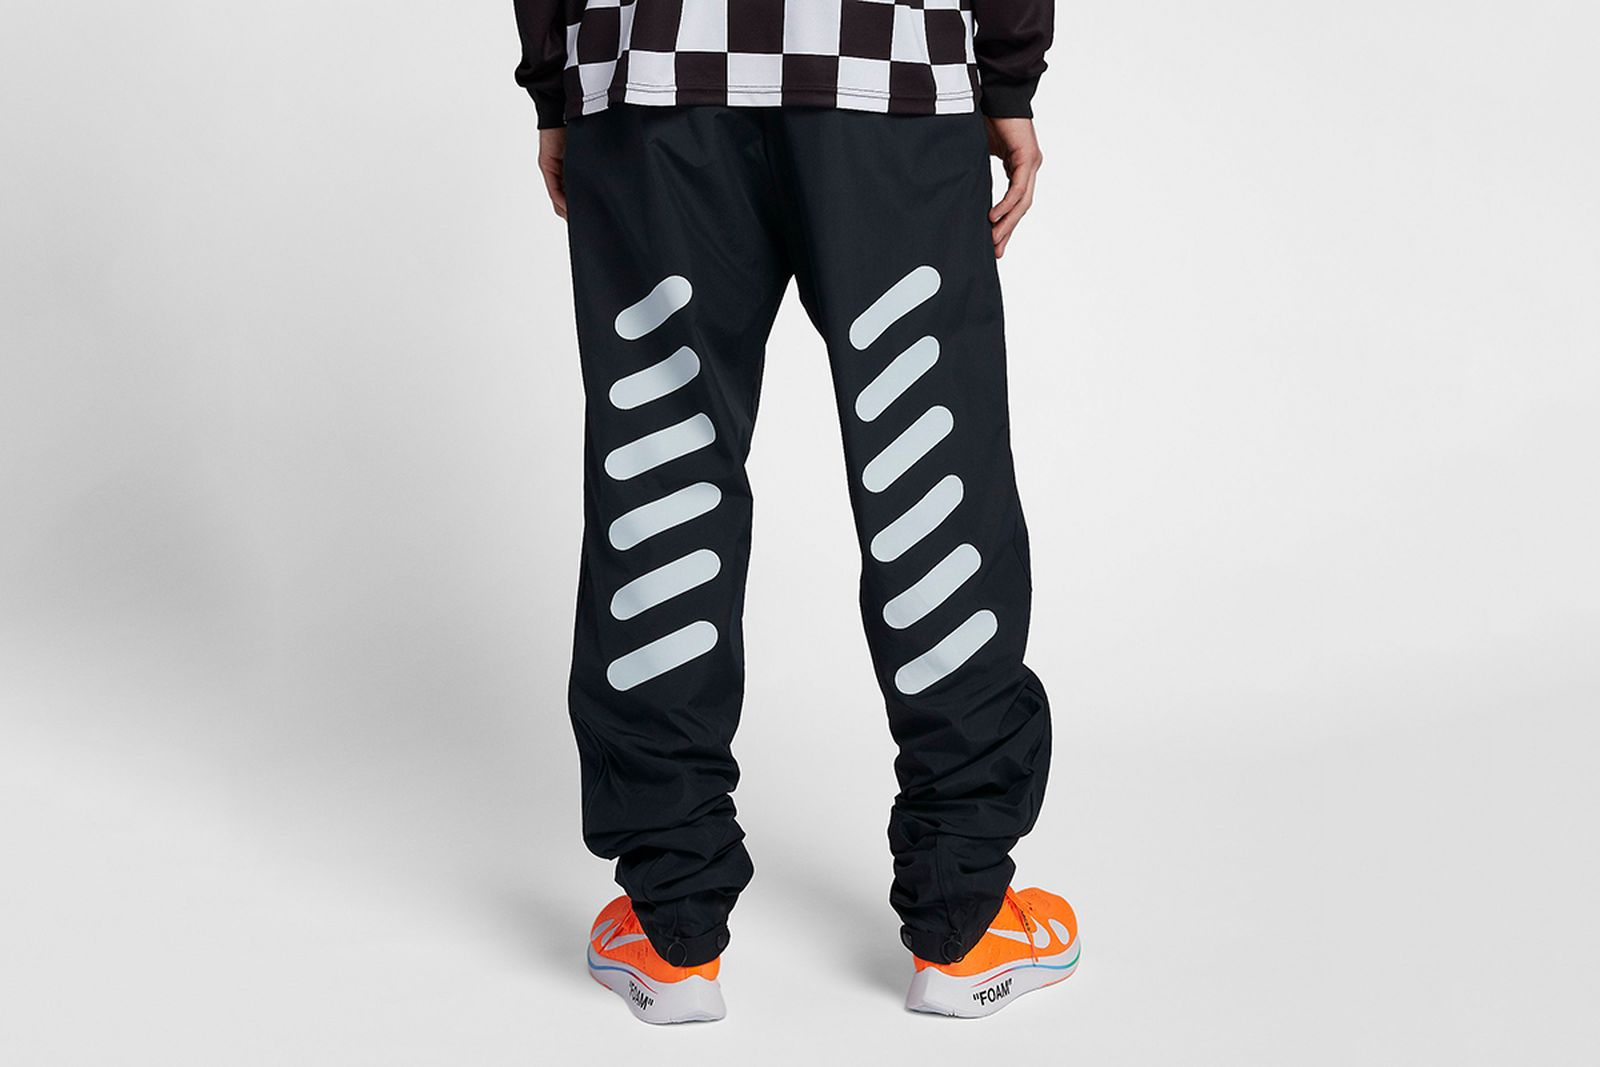 track pants2 2018 FIFA World Cup Nike OFF-WHITE c/o Virgil Abloh